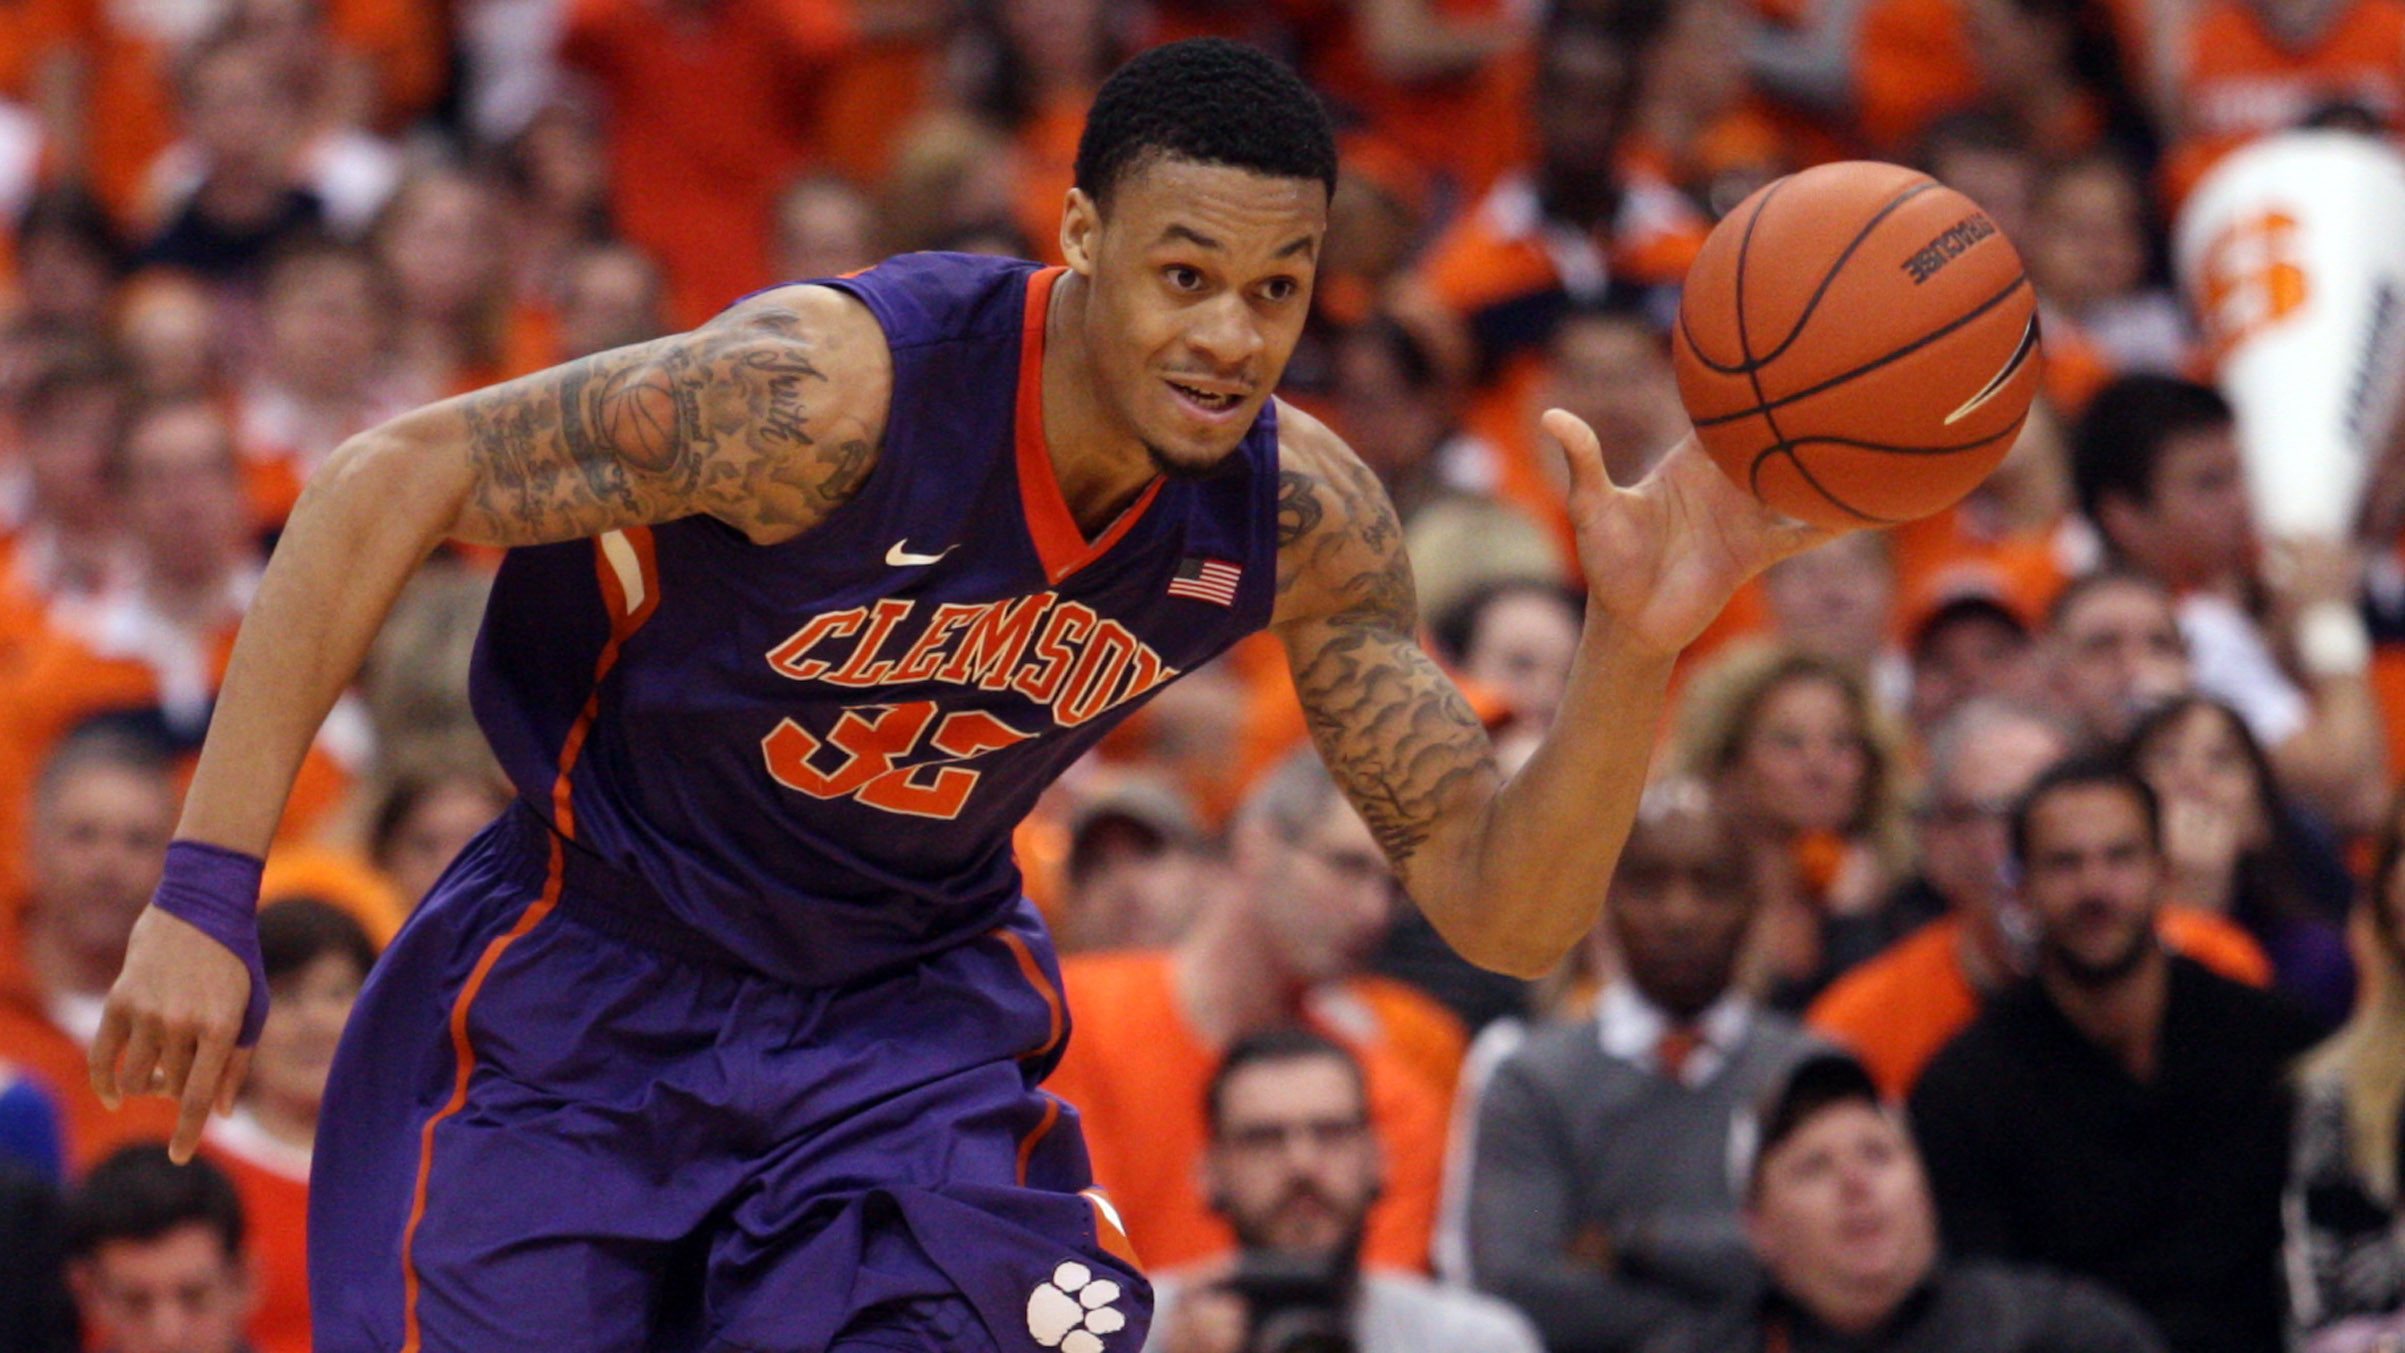 McDaniels Headed to Chicago for NBA Draft Combine